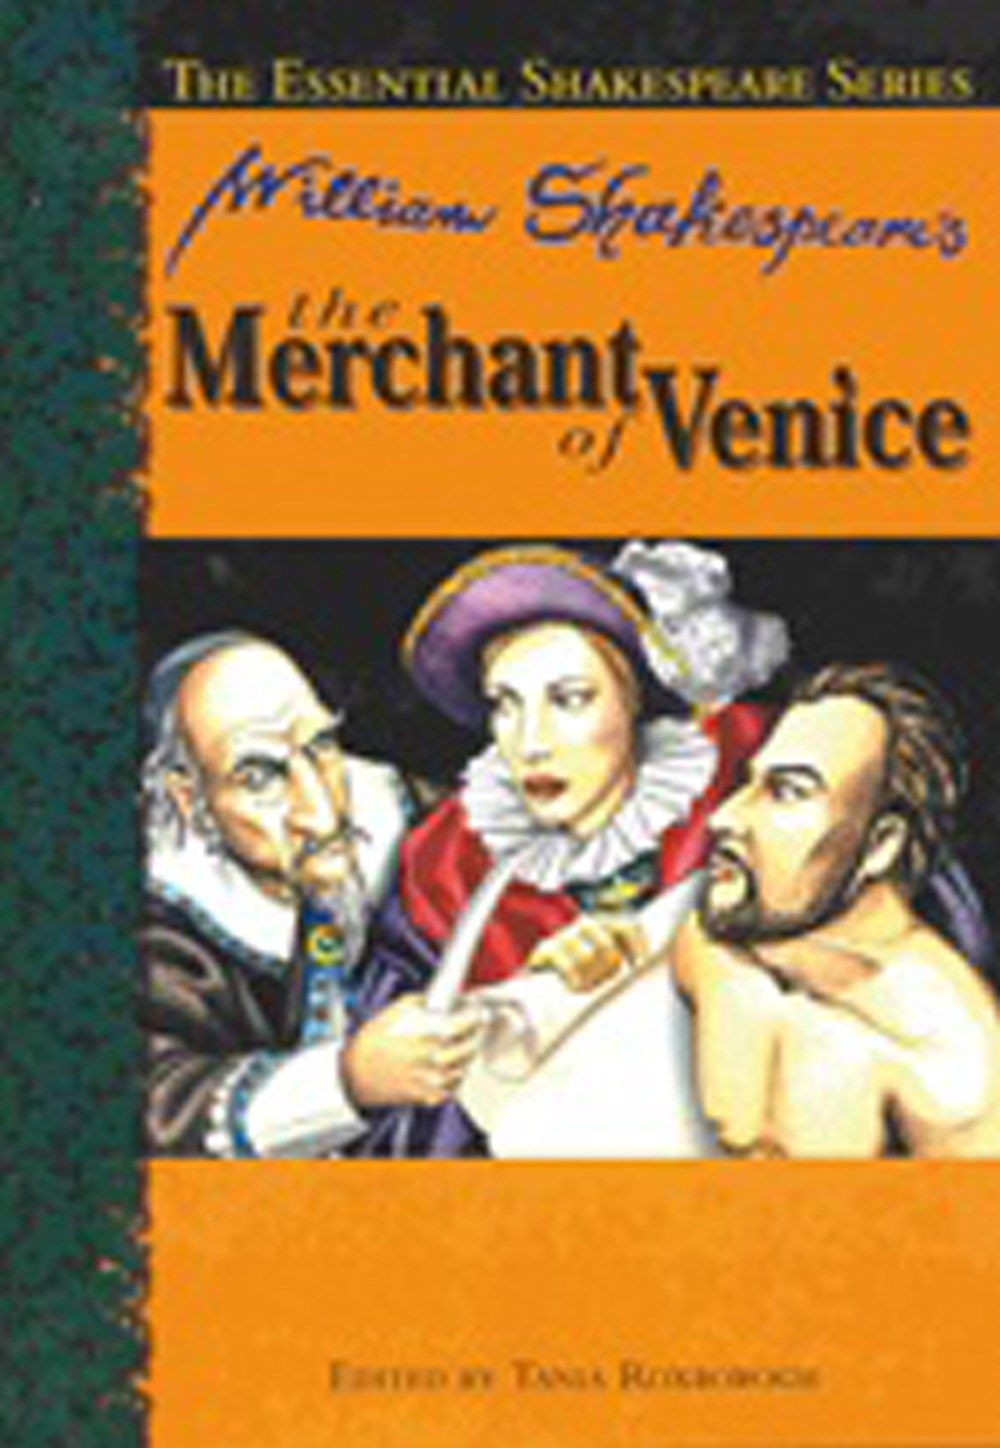 Essential Shakespeare: Merchant Of Venice